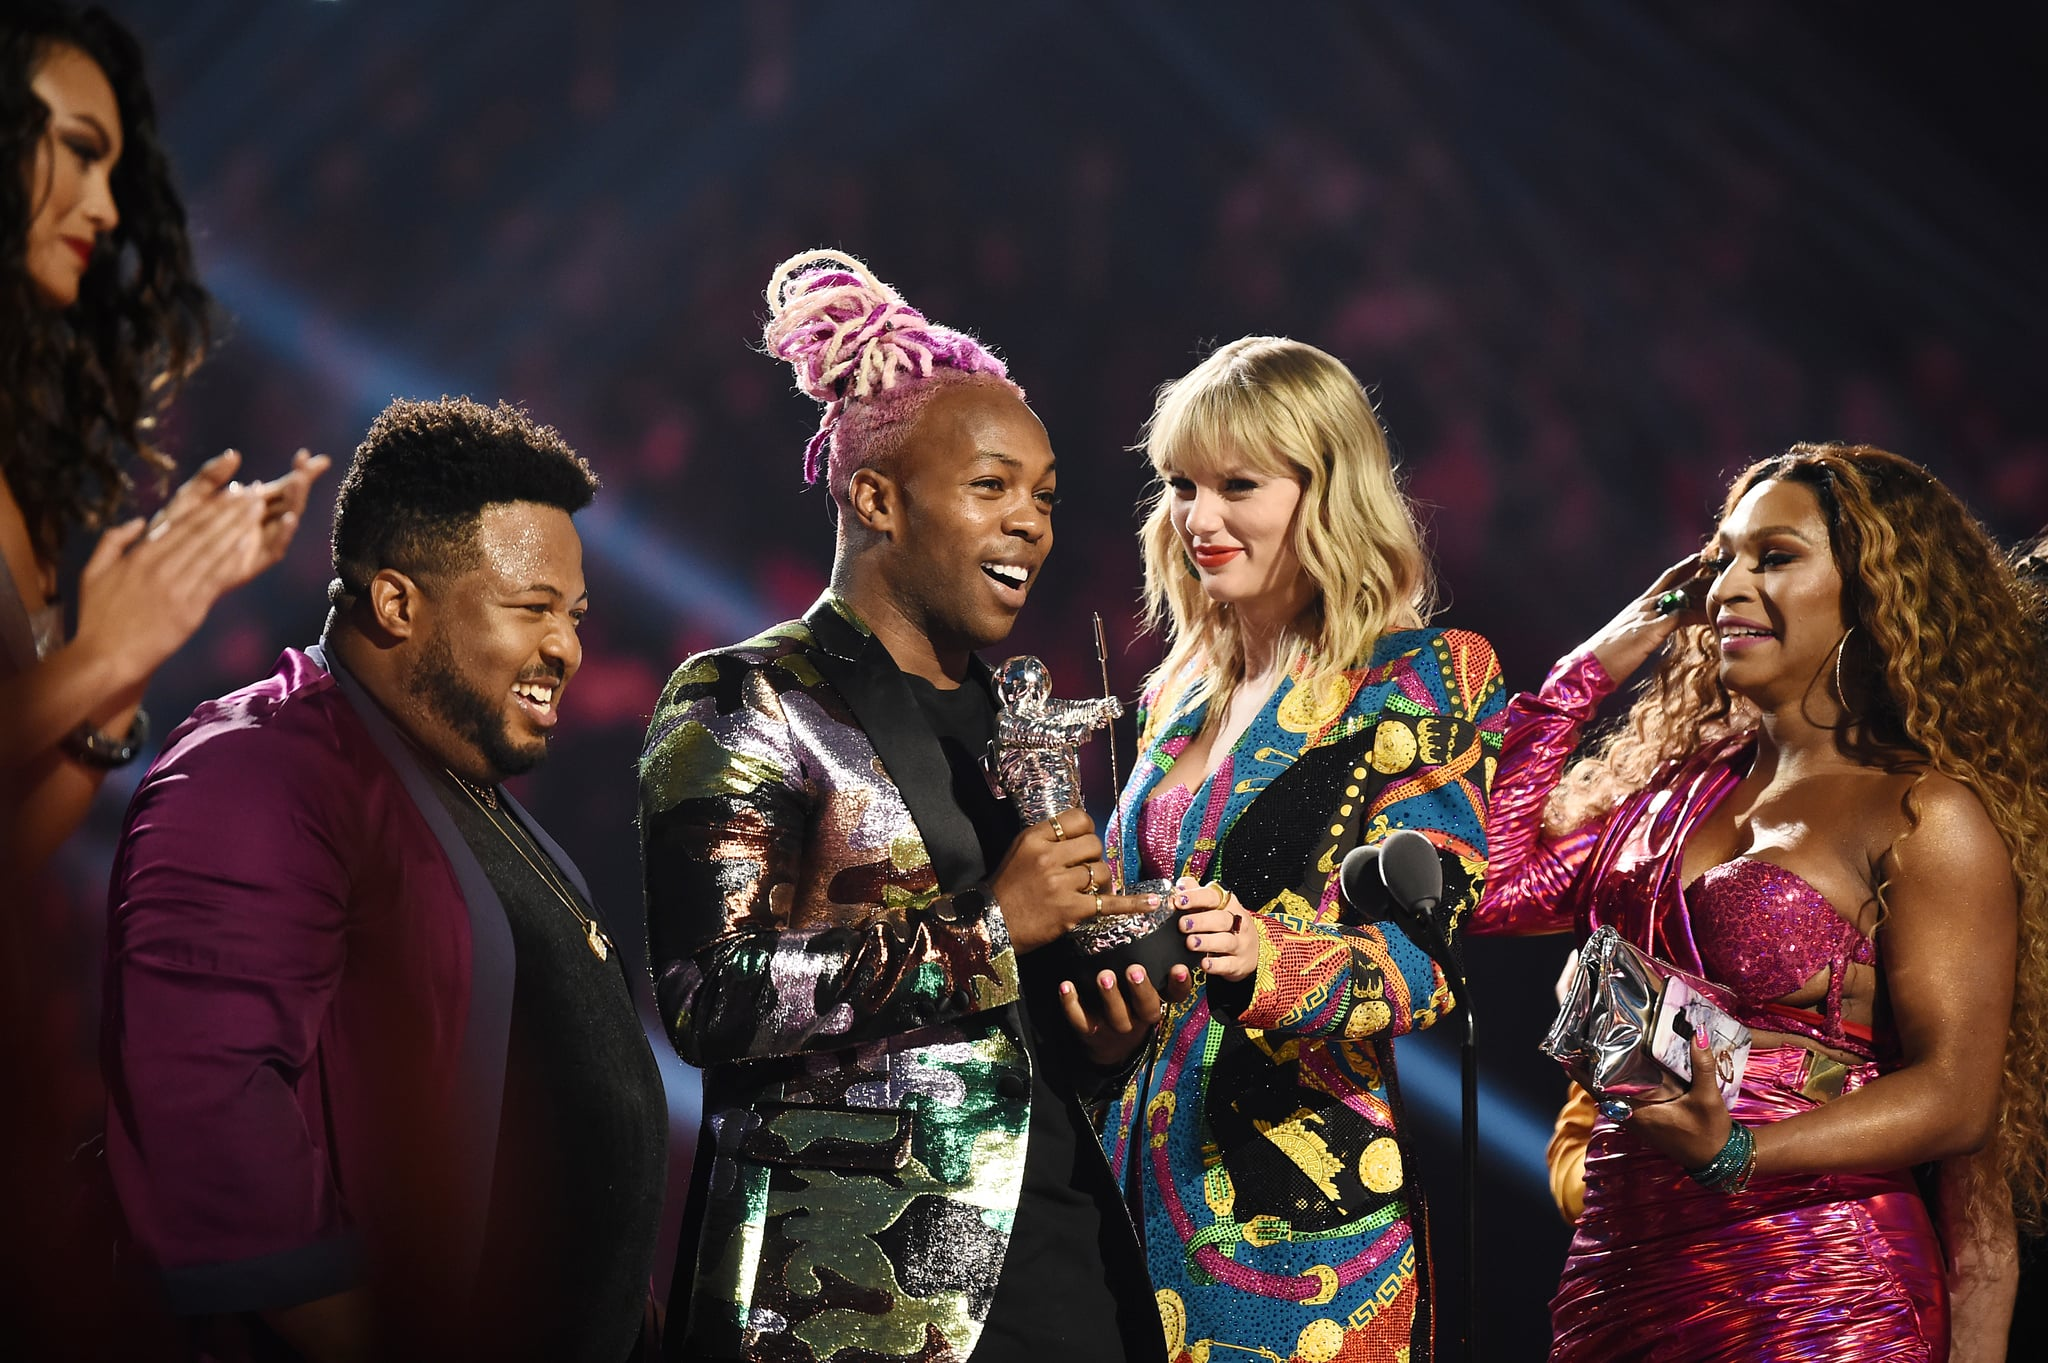 NEWARK, NEW JERSEY - AUGUST 26: Todrick Hall and Taylor Swift receive 'Video For Good' award for onstage during the 2019 MTV Video Music Awards at Prudential Center on August 26, 2019 in Newark, New Jersey. (Photo by Dimitrios Kambouris/VMN19/Getty Images for MTV)